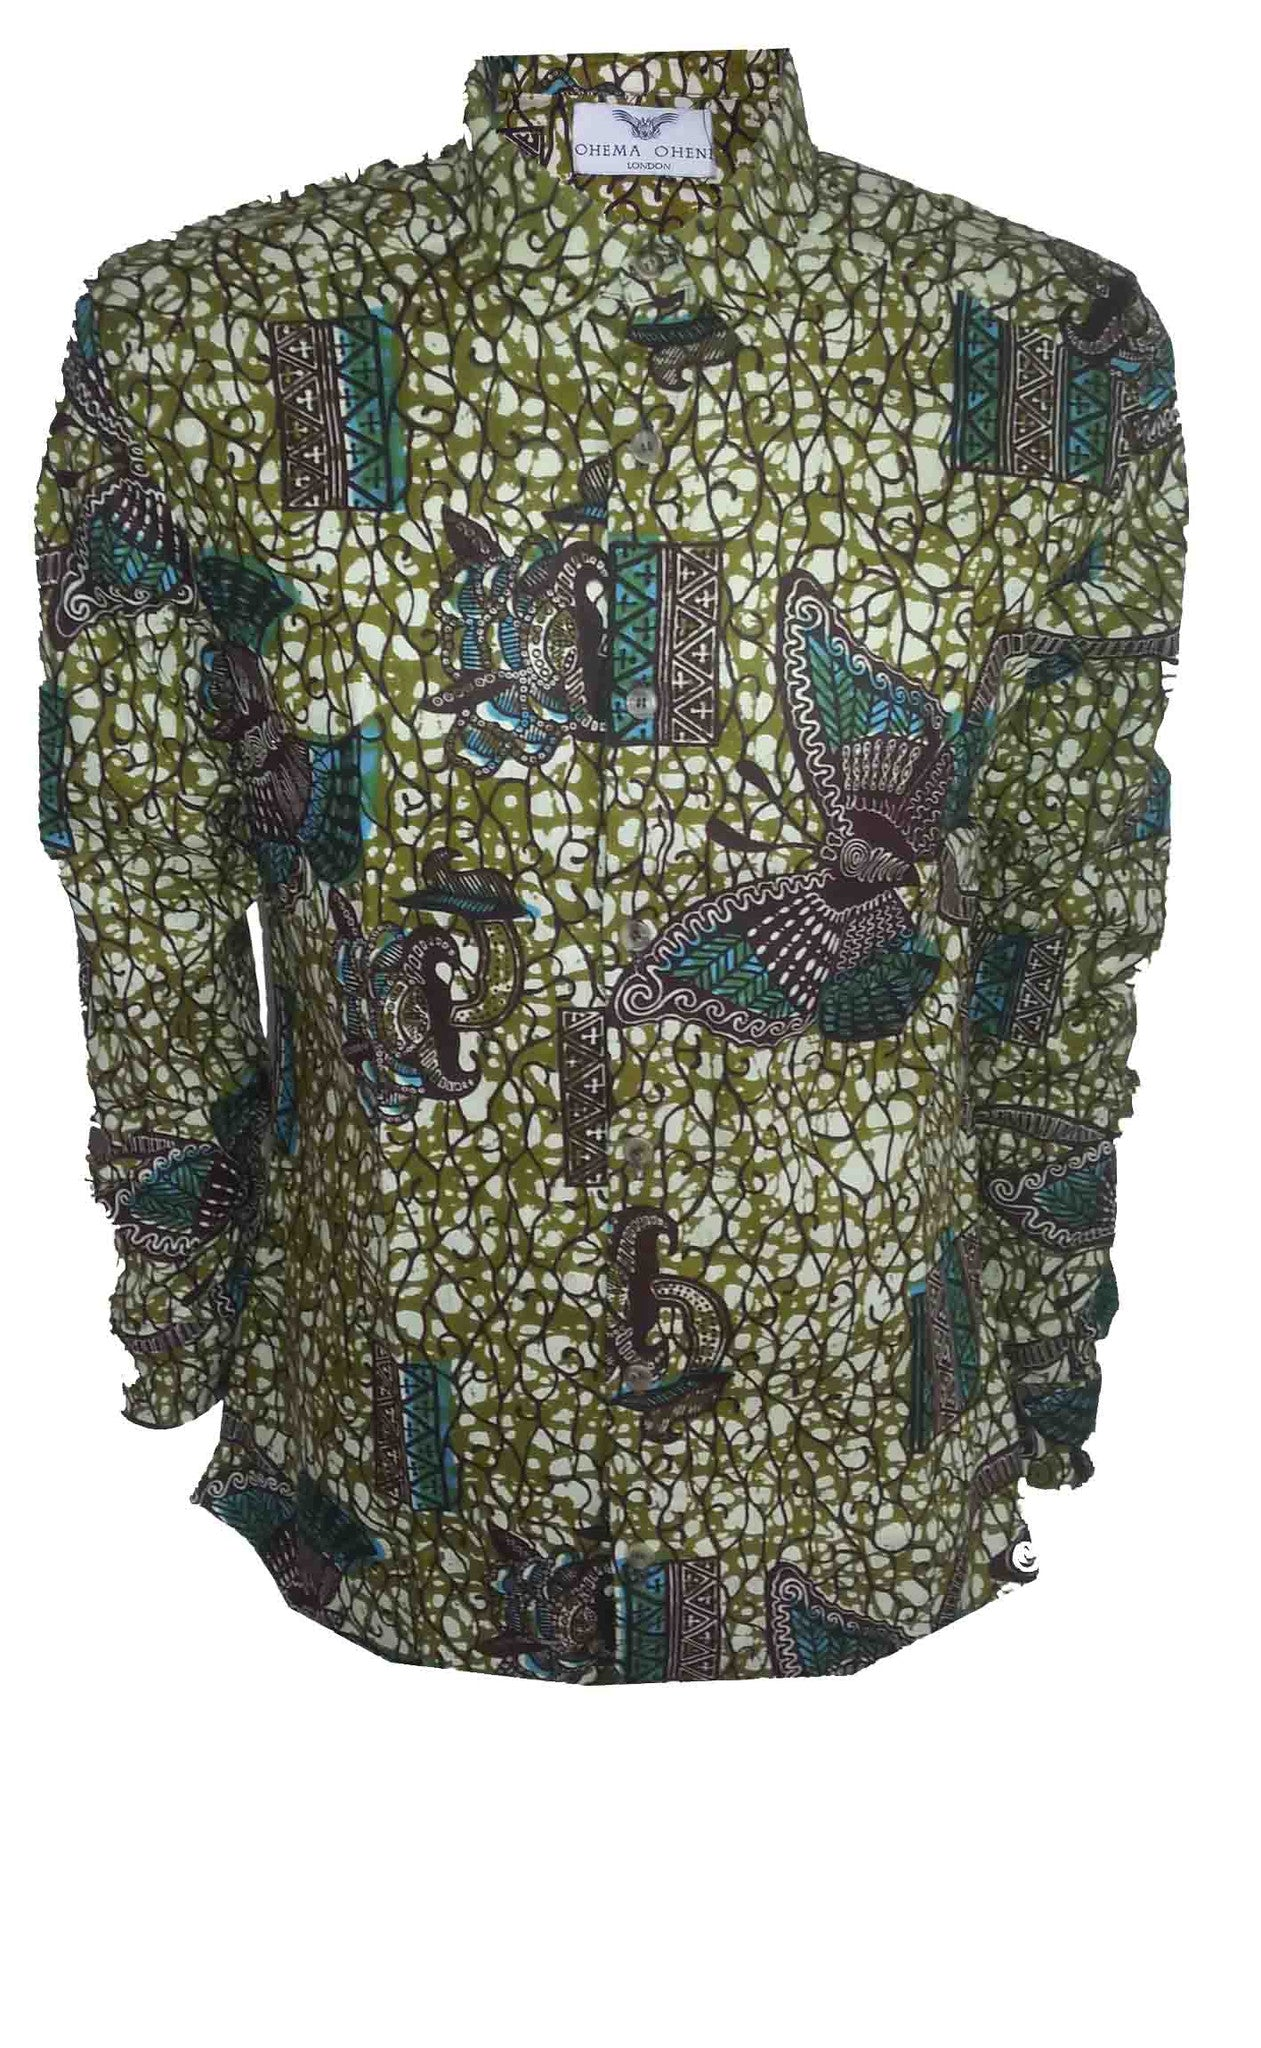 Men's long sleeve African printed shirt - OHEMA OHENE AFRICAN INSPIRED FASHION